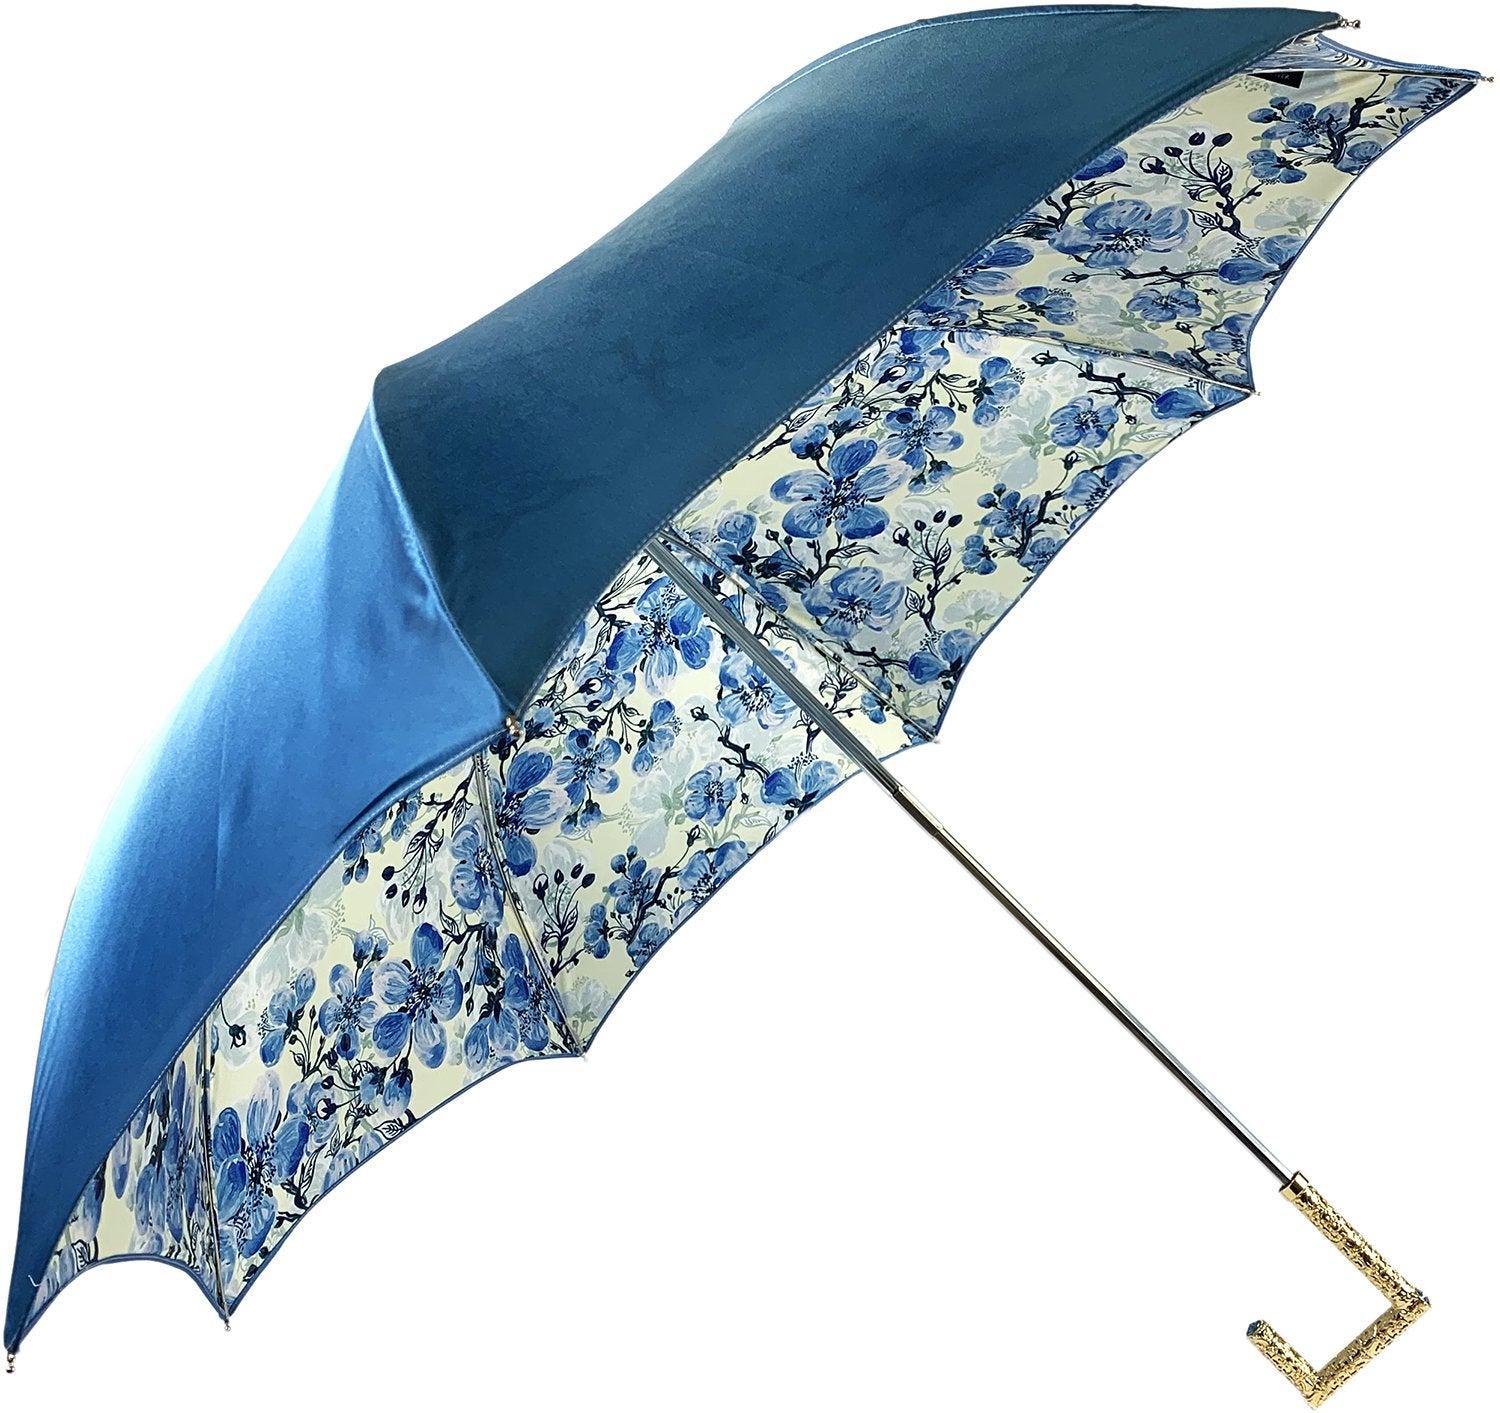 Fantastic umbrella with sugar paper color - IL MARCHESATO LUXURY UMBRELLAS, CANES AND SHOEHORNS